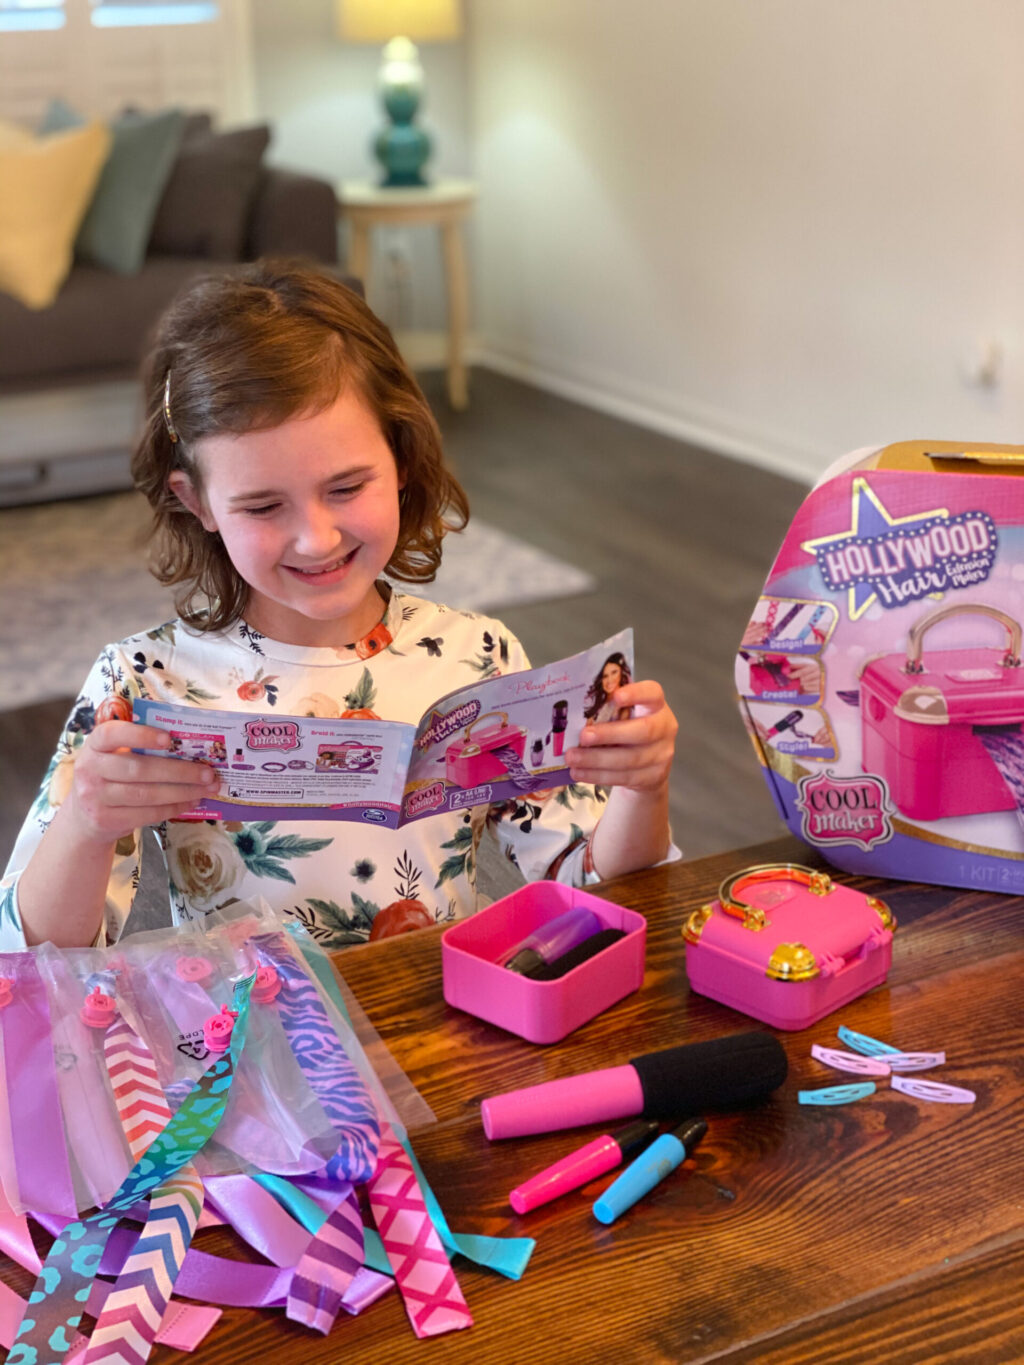 little girl looking at instruction booklet while sitting at brown wooden table with pink and purple hair extension kit supplies